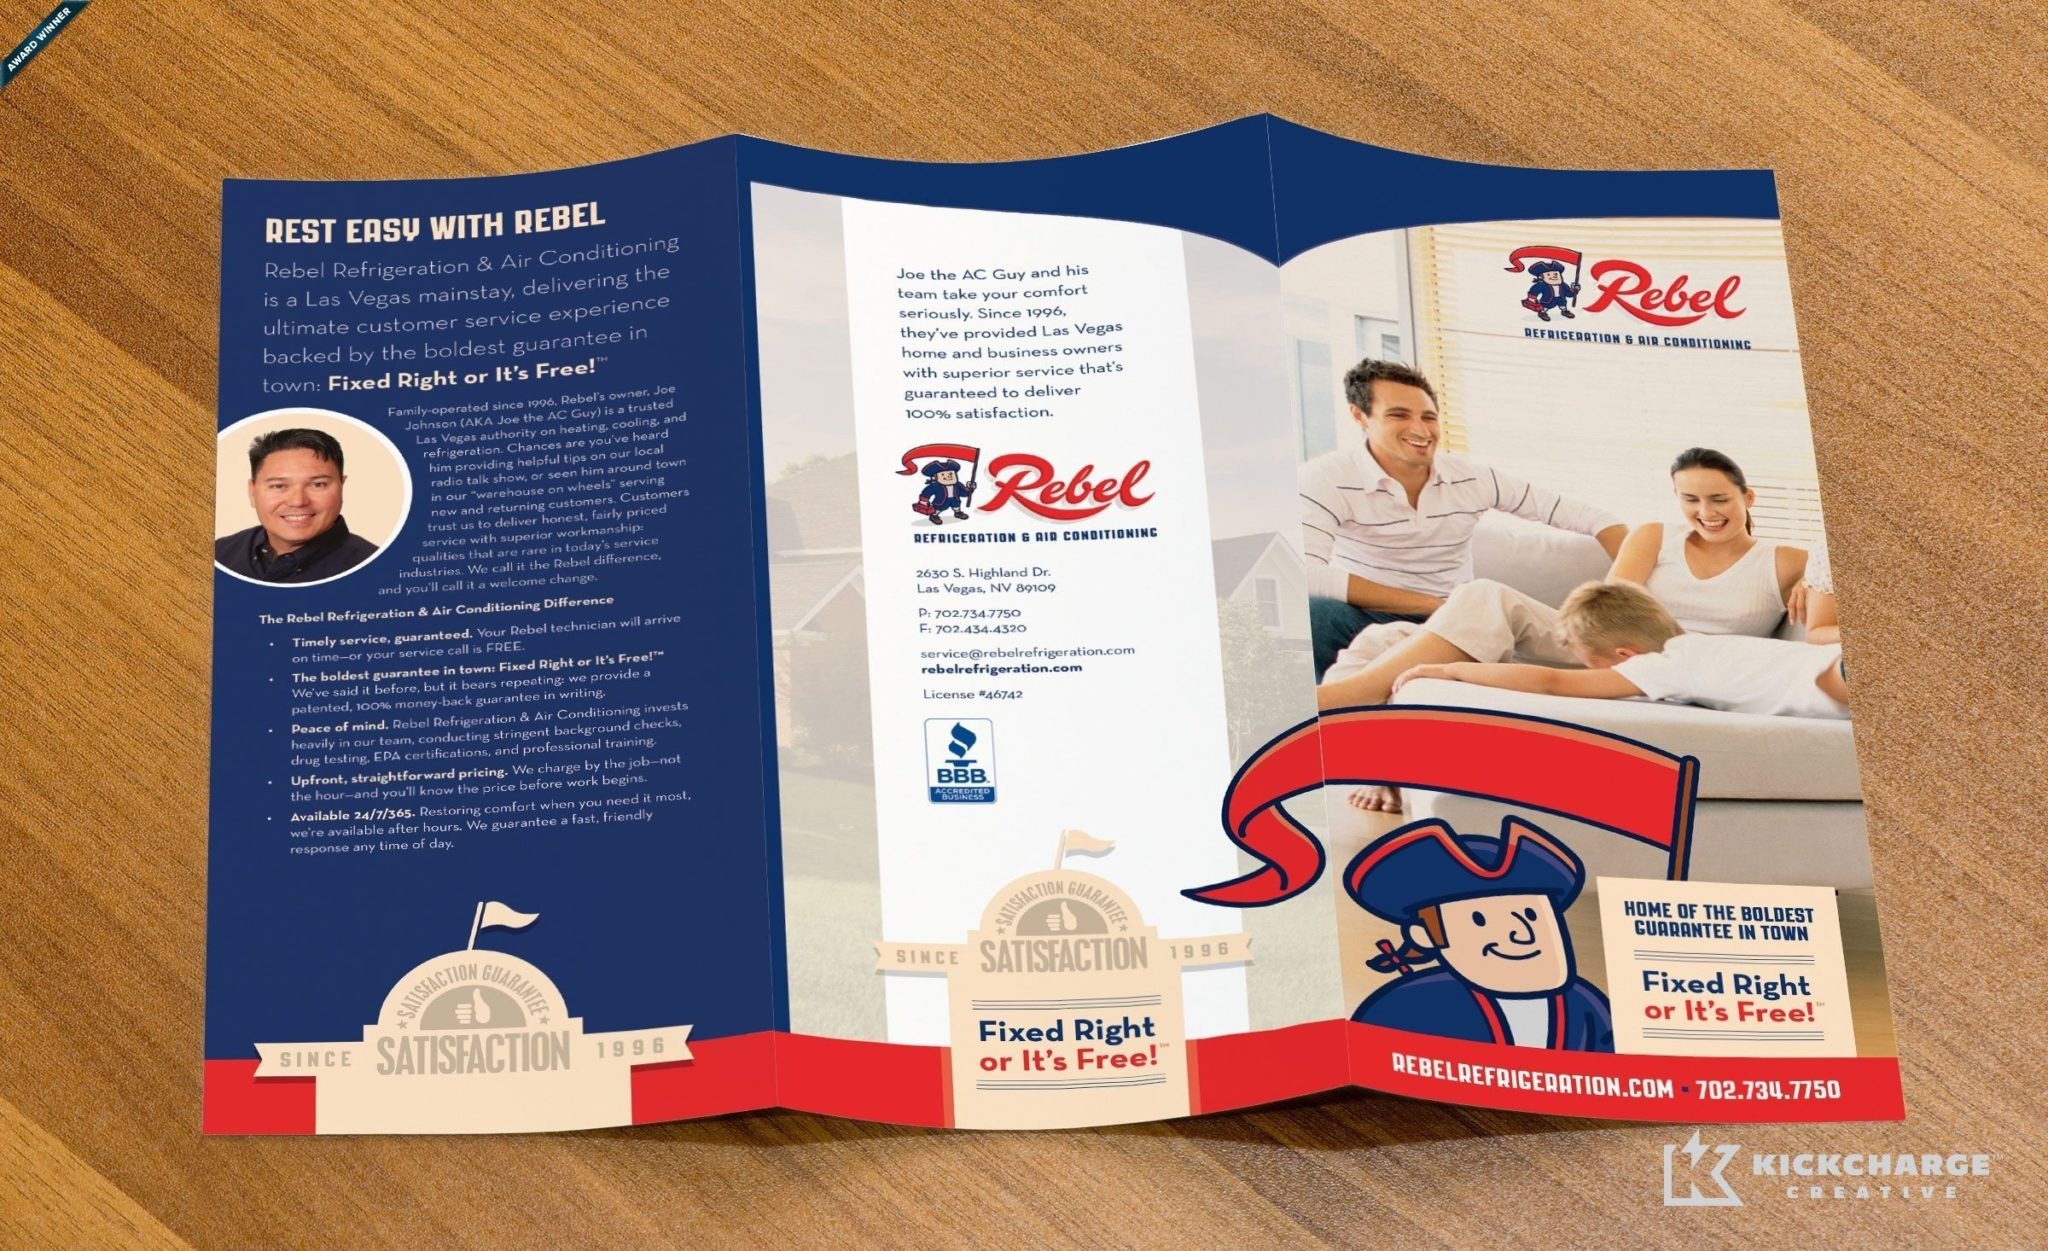 Trifold brochure design for an HVAC and refrigeration company in Las Vegas, NV.